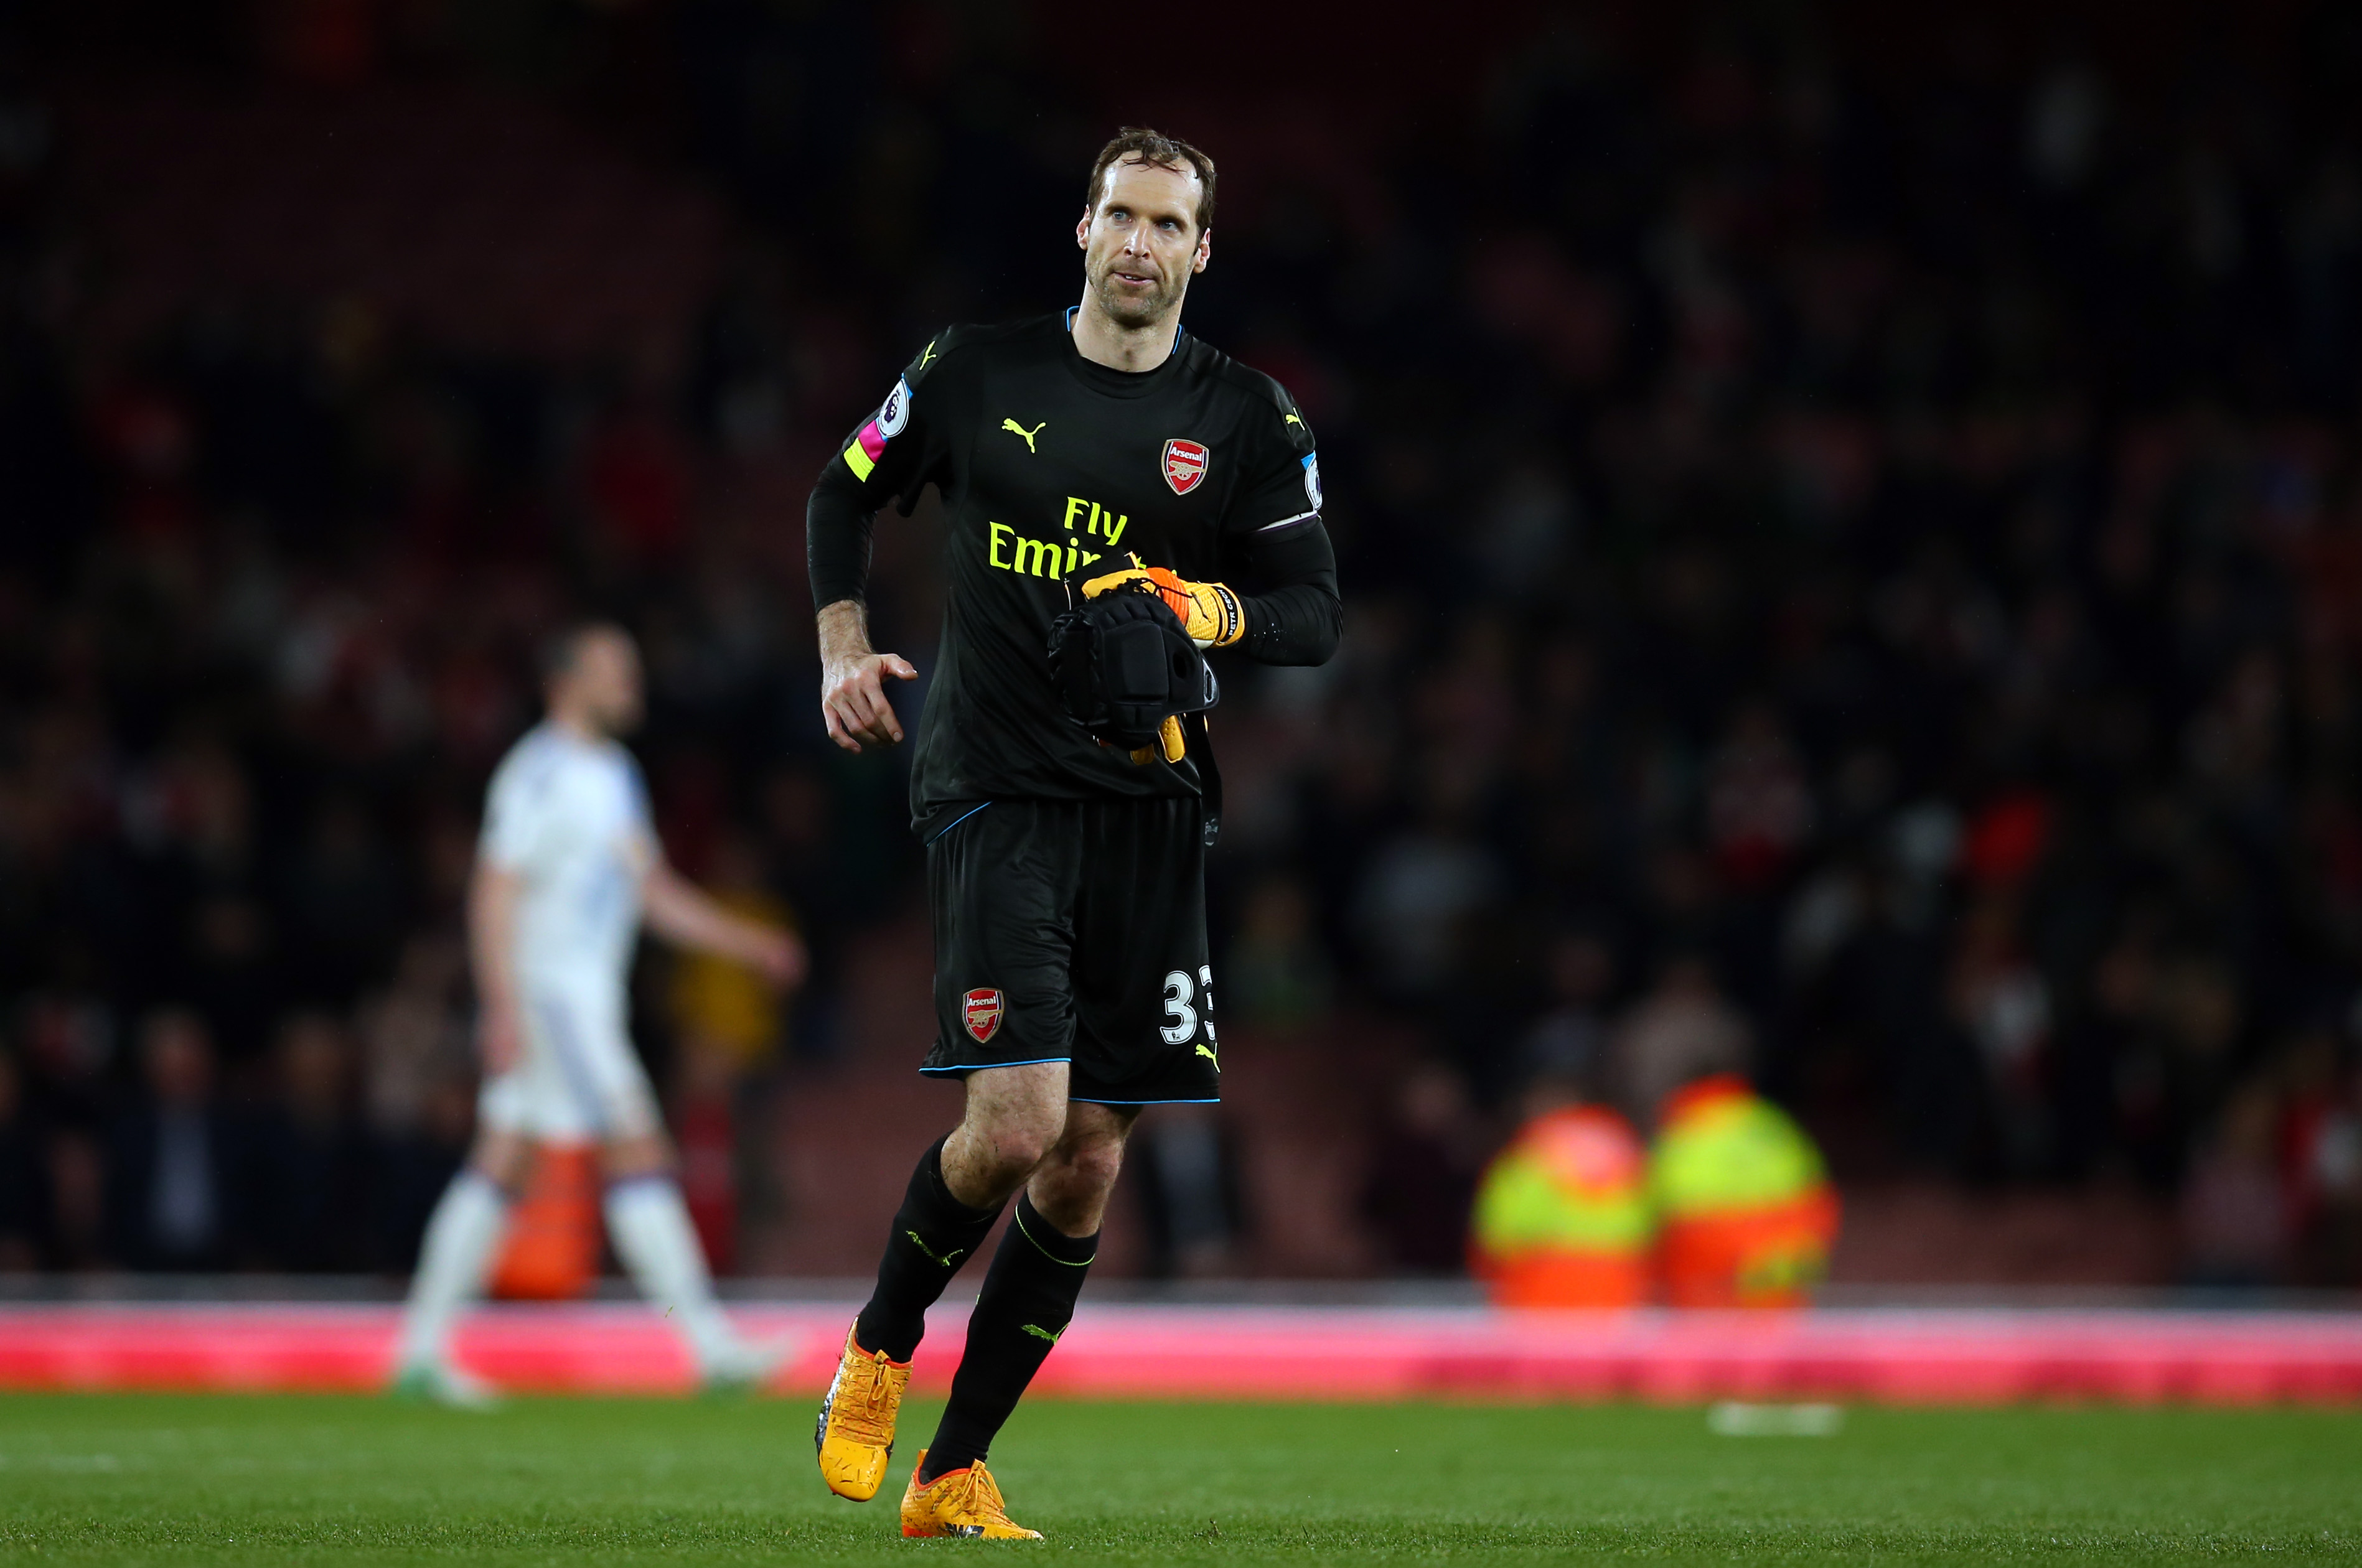 Arsenal 3 goalkeeper candidates to replace Petr Cech